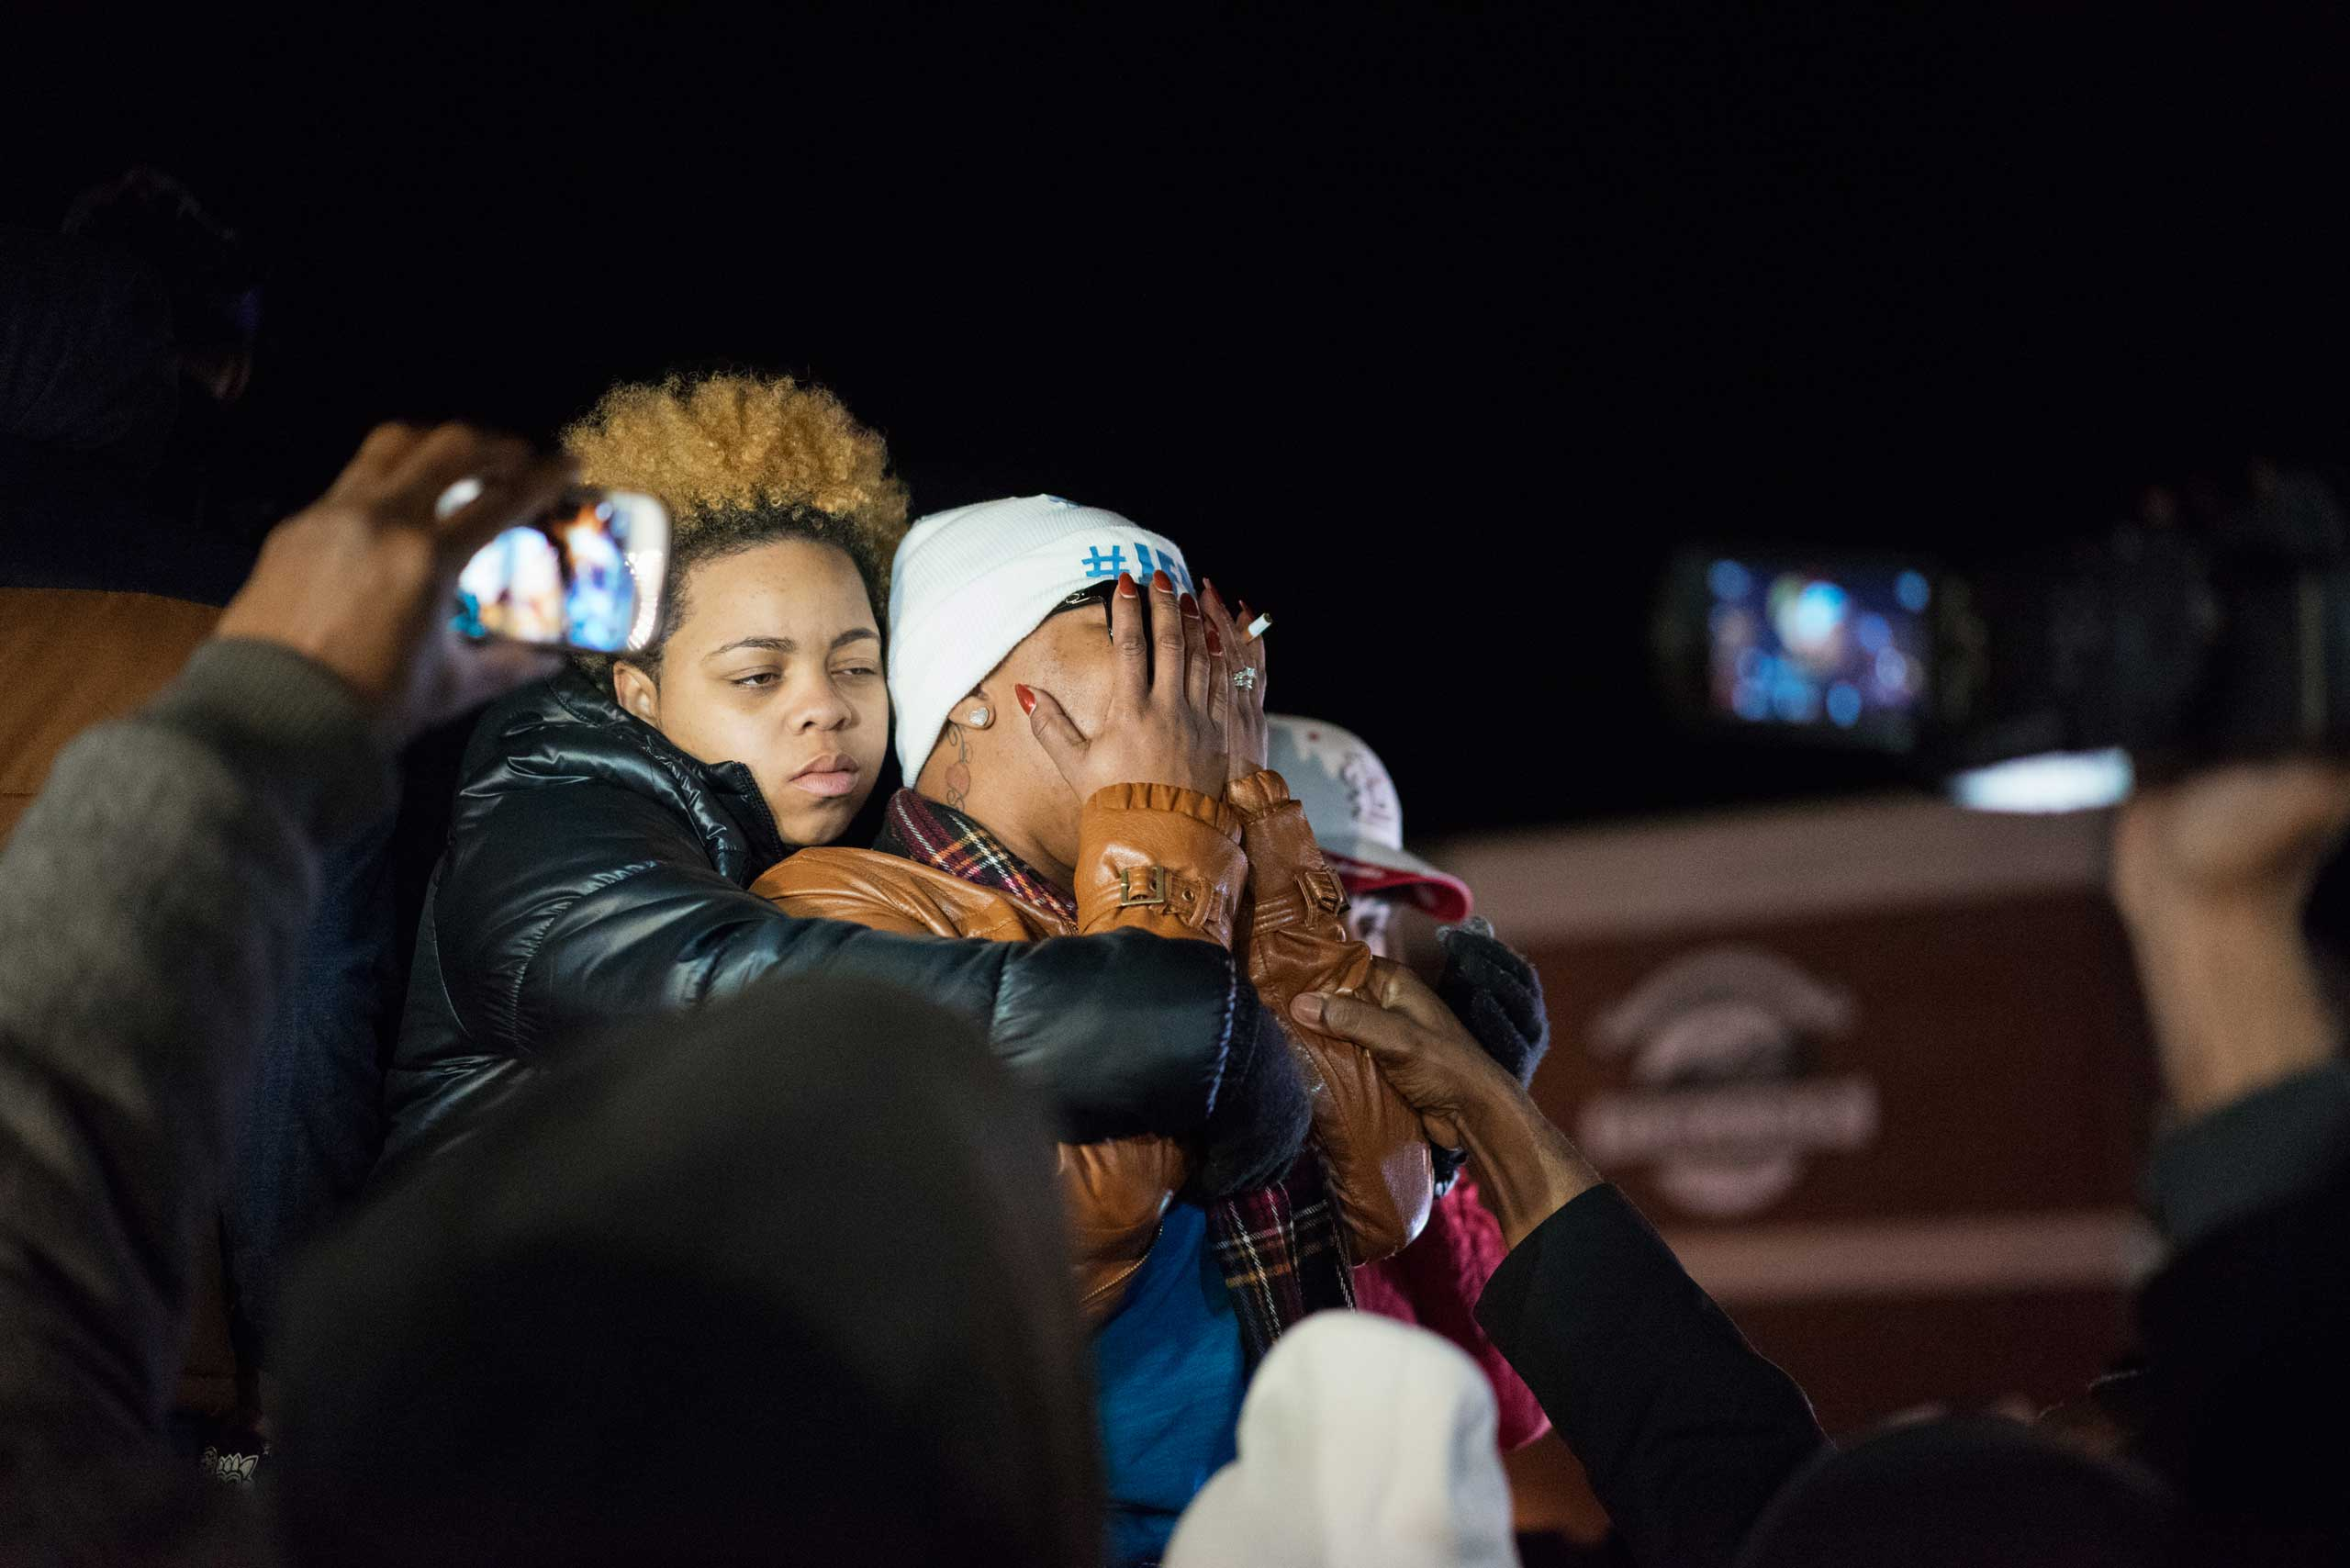 Michael Brown's mother, Lesley McSpadden, covers her face while standing alongside other demonstrators in Ferguson, Mo. on Nov. 24, 2014